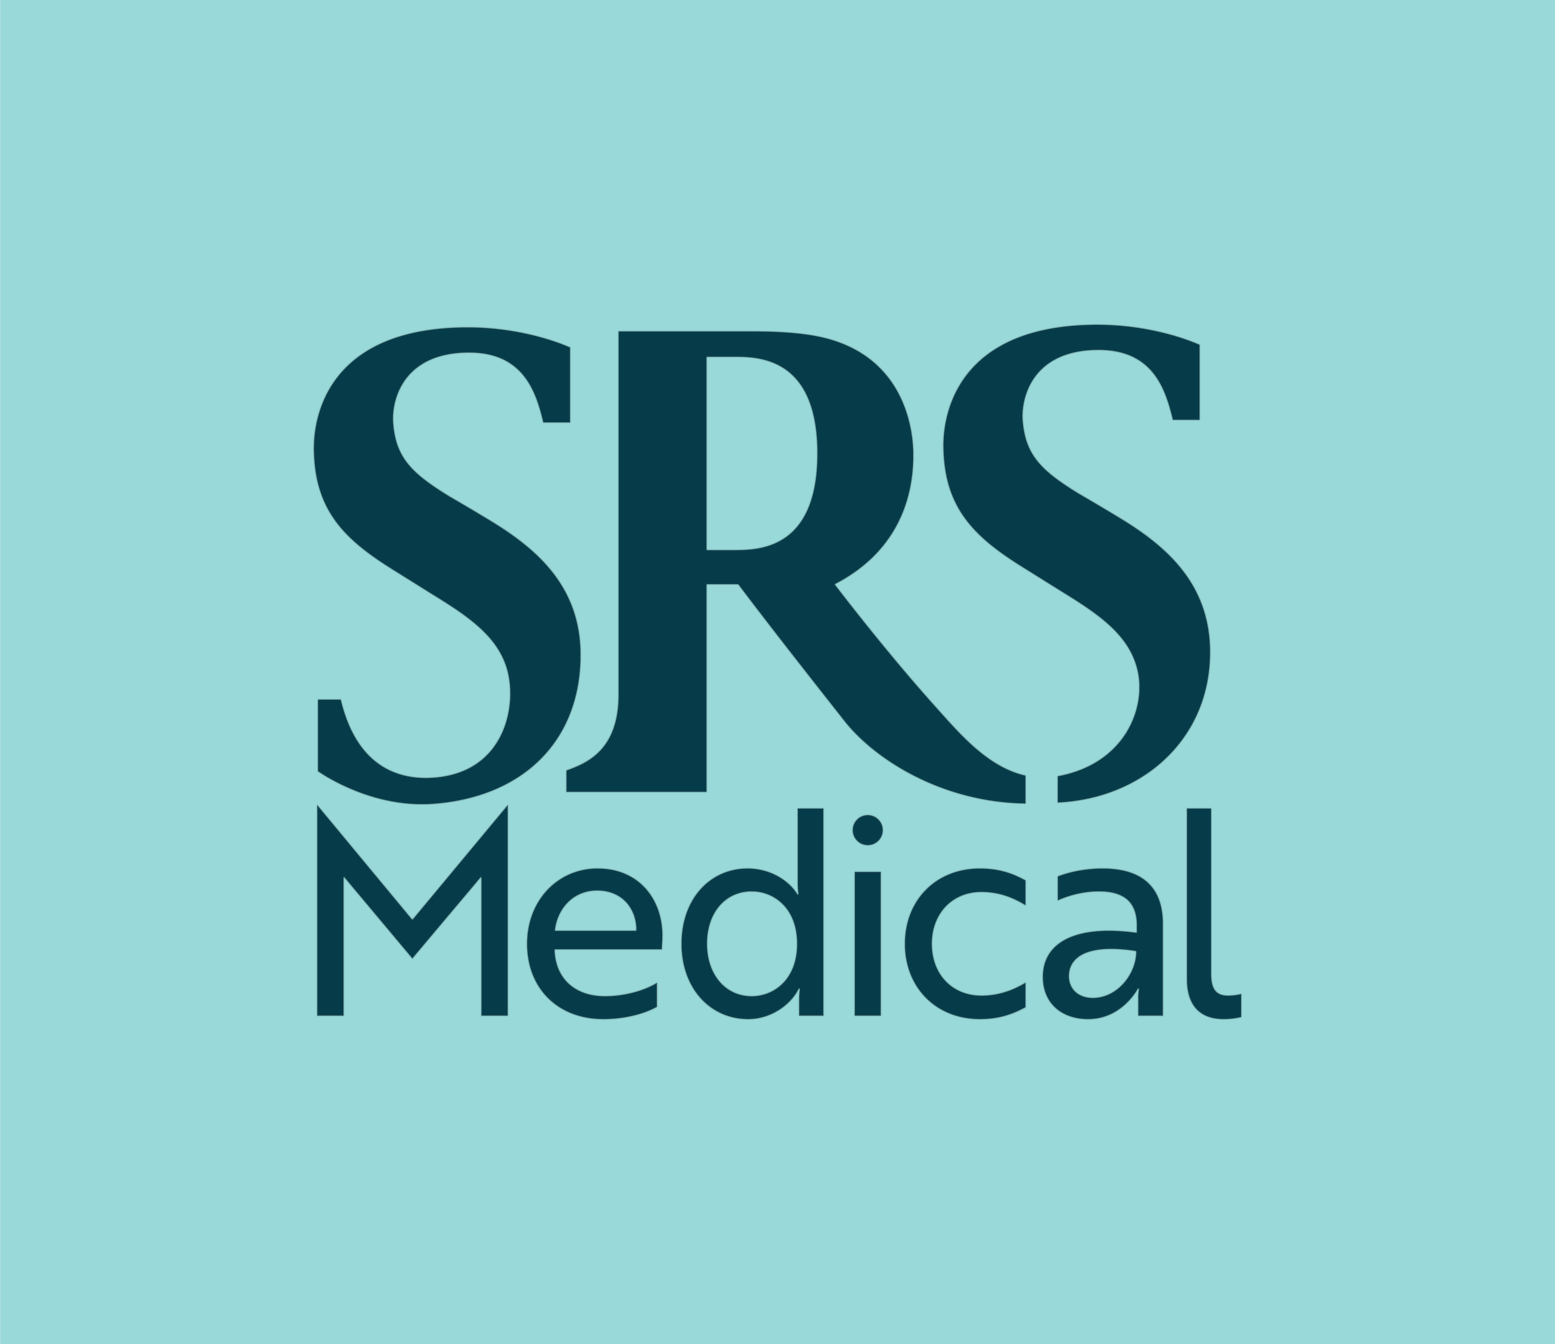 SRS Medical improves urologic care with simple, proven technologies for men with Benign Prostate Hyperplasia (BPH).